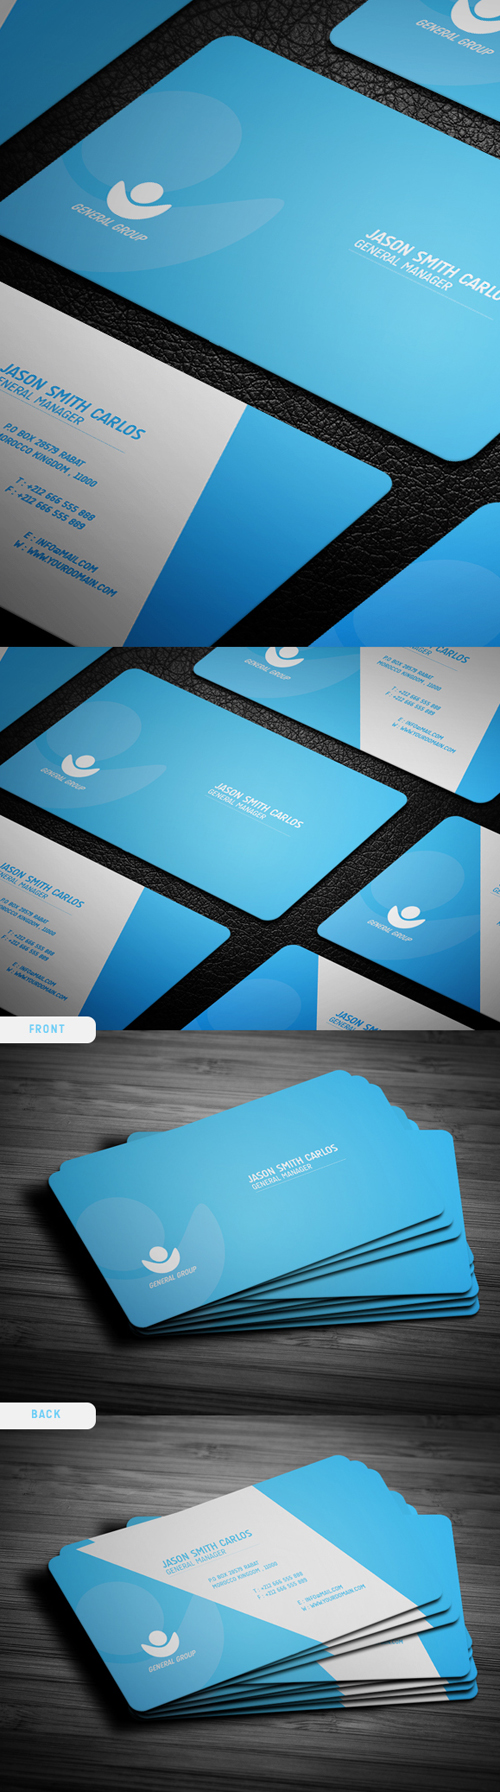 business cards template design - 12